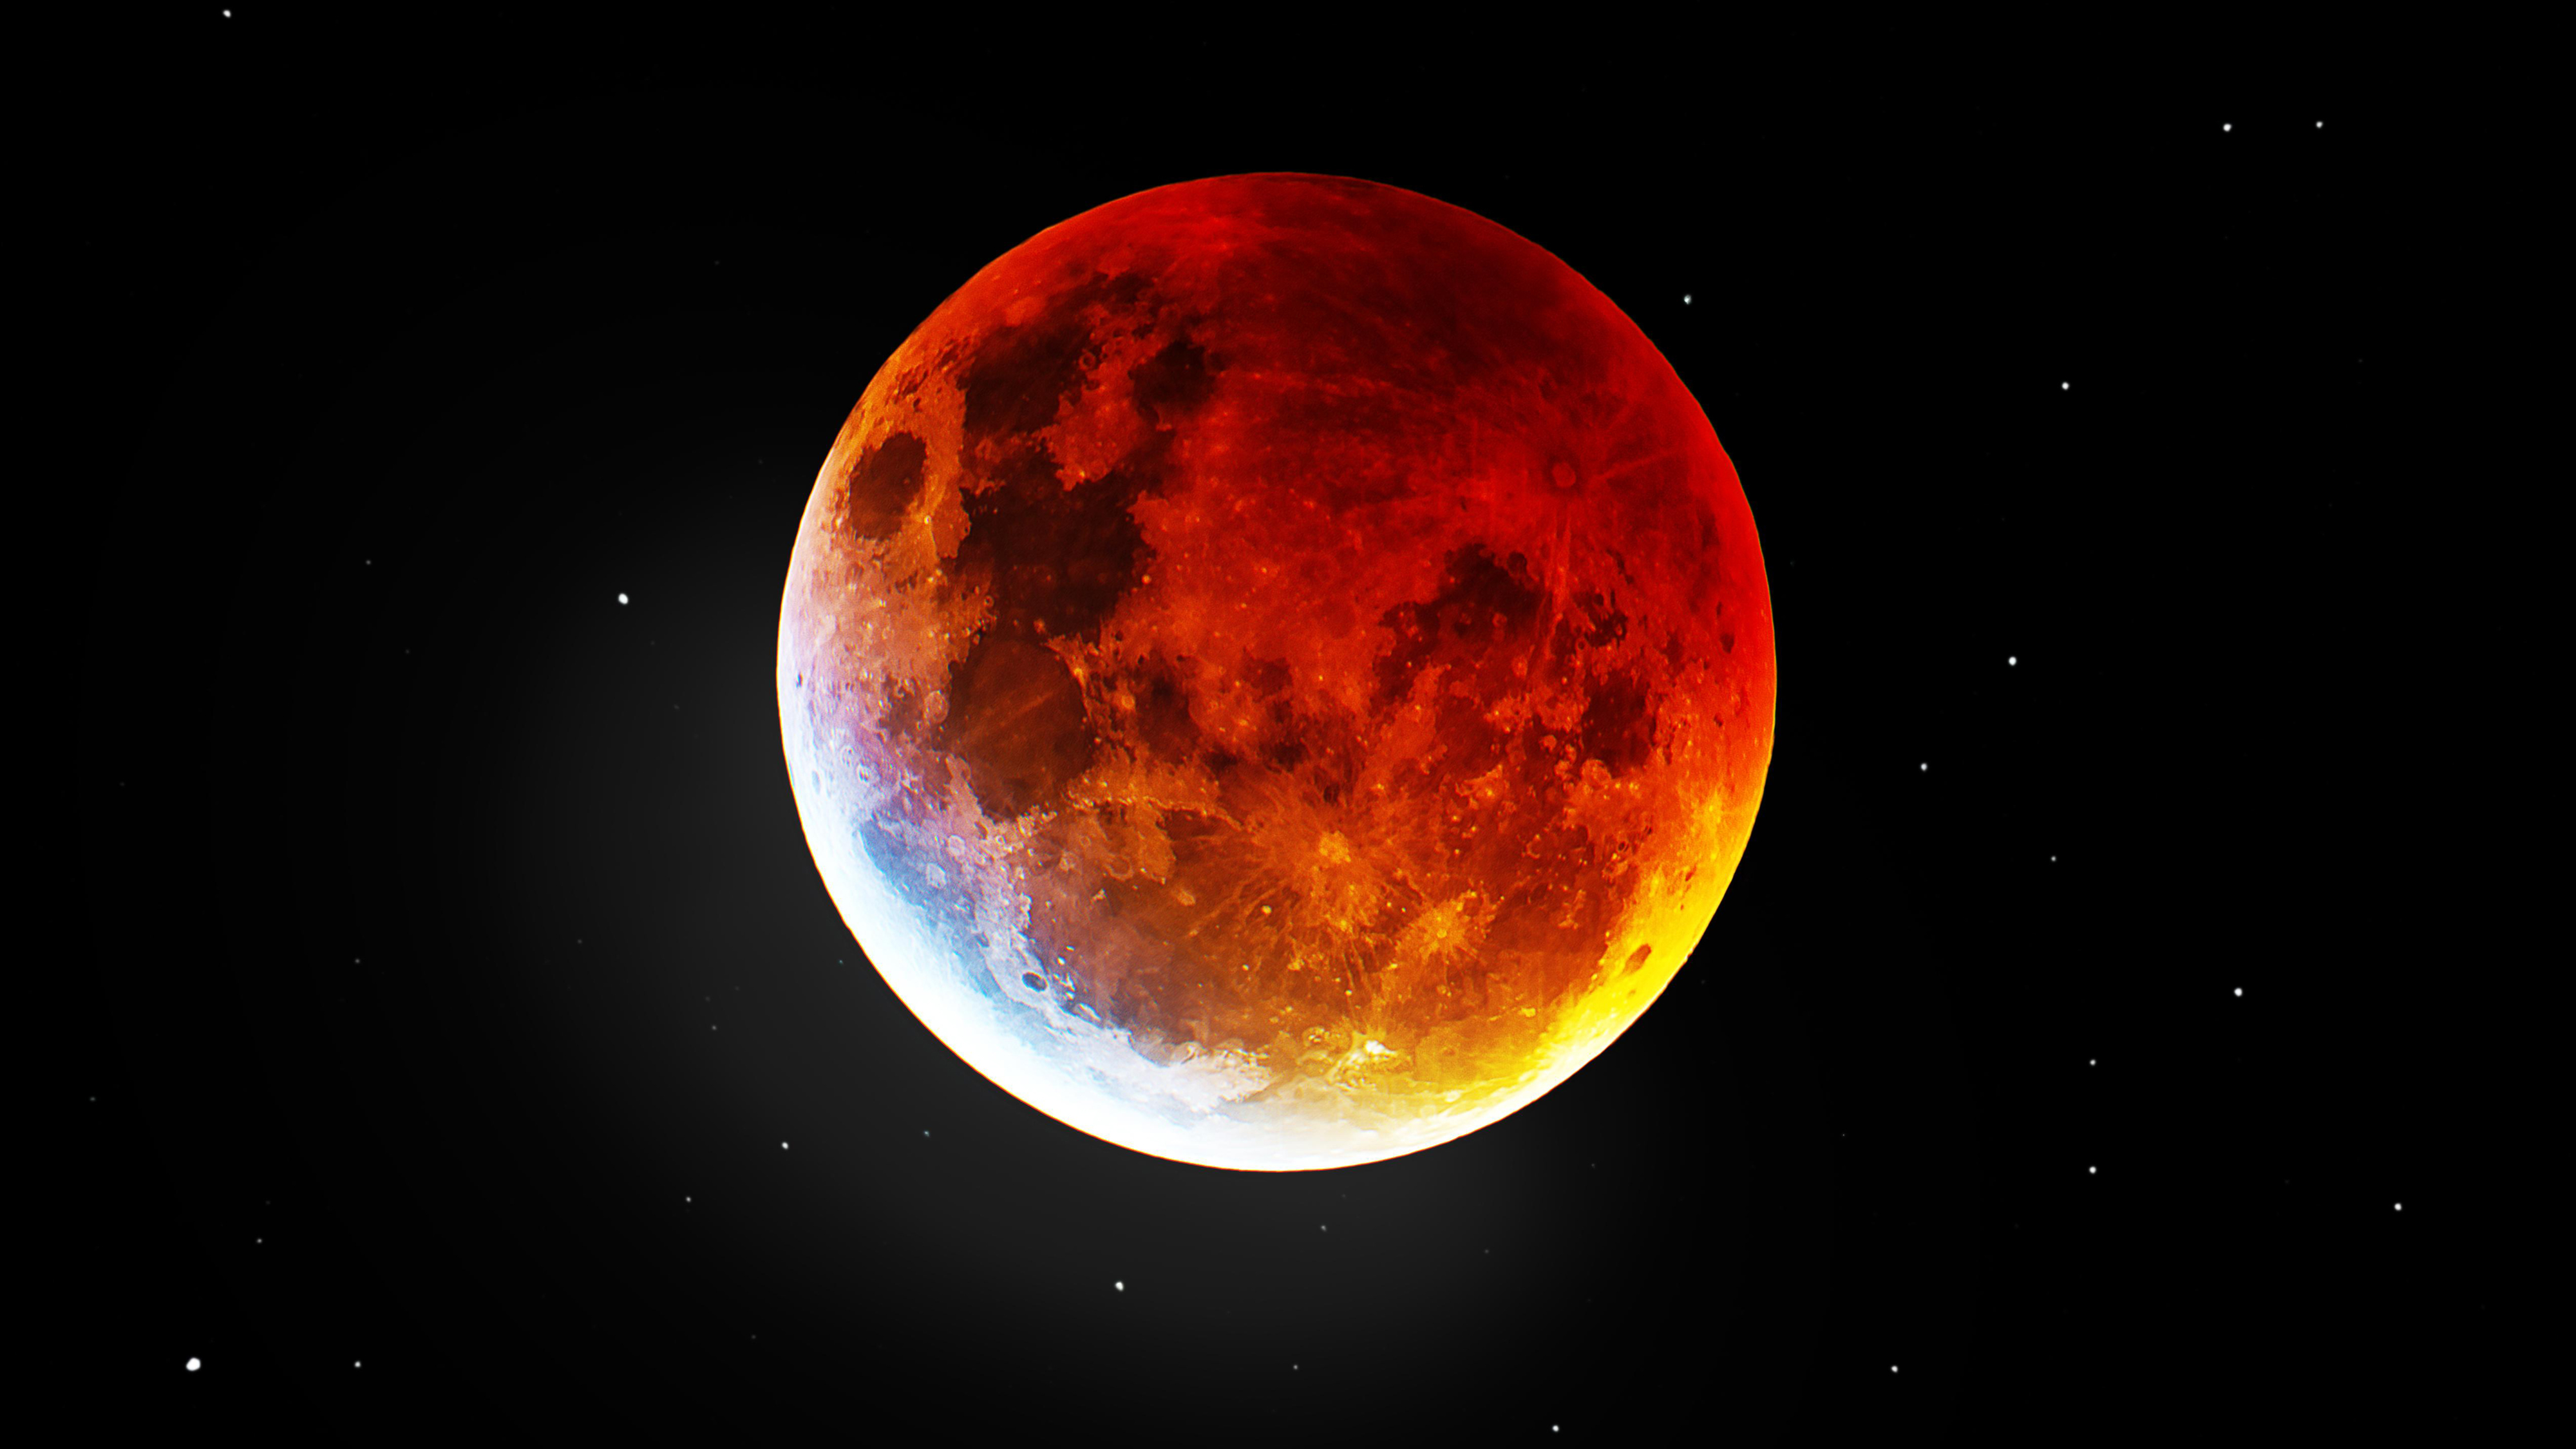 2560x1080 Blood Moon 4k 2560x1080 Resolution Wallpaper Hd Space 4k Wallpapers Images Photos And Background